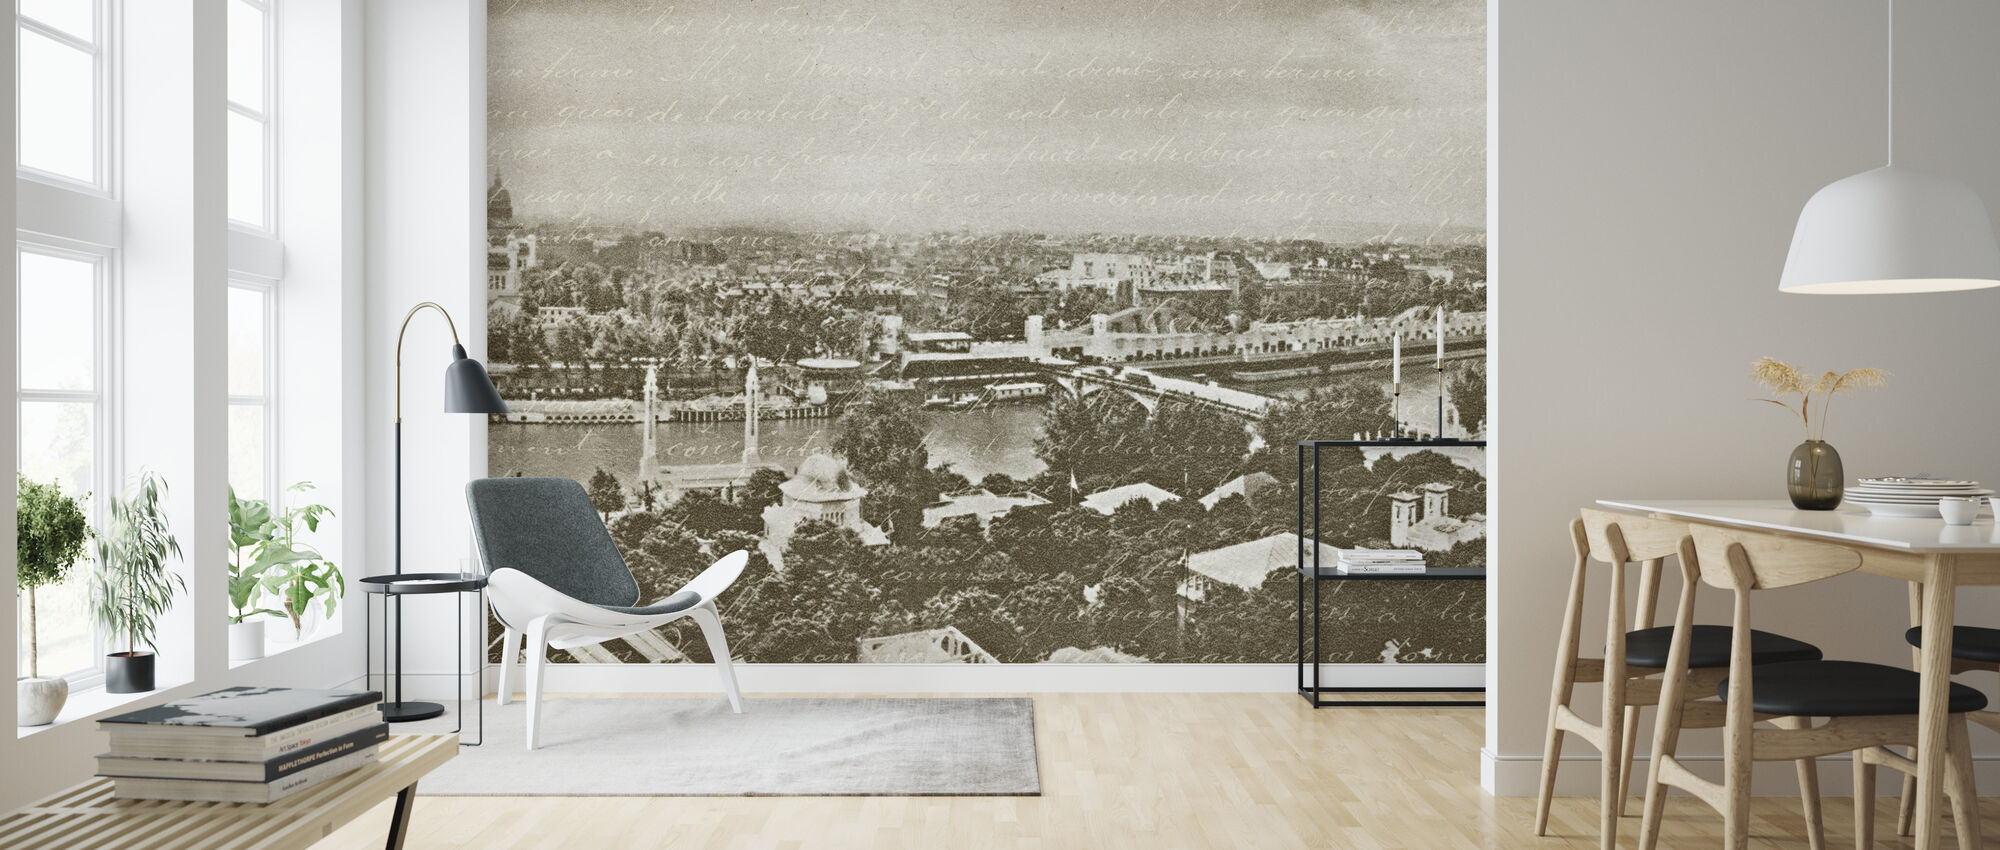 Paris Panorama - Wallpaper - Living Room